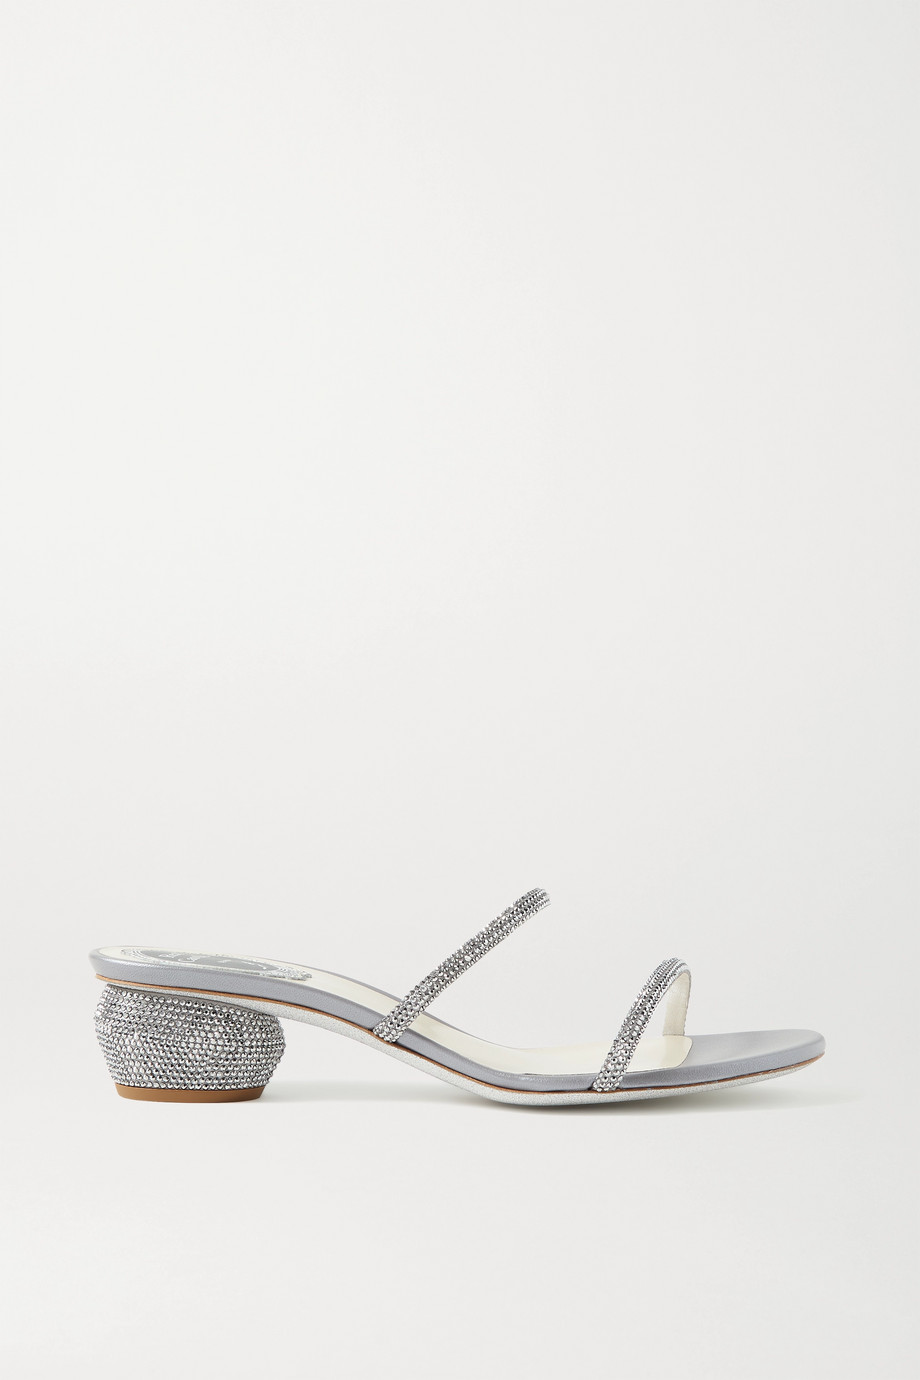 René Caovilla Crystal-embellished leather sandals